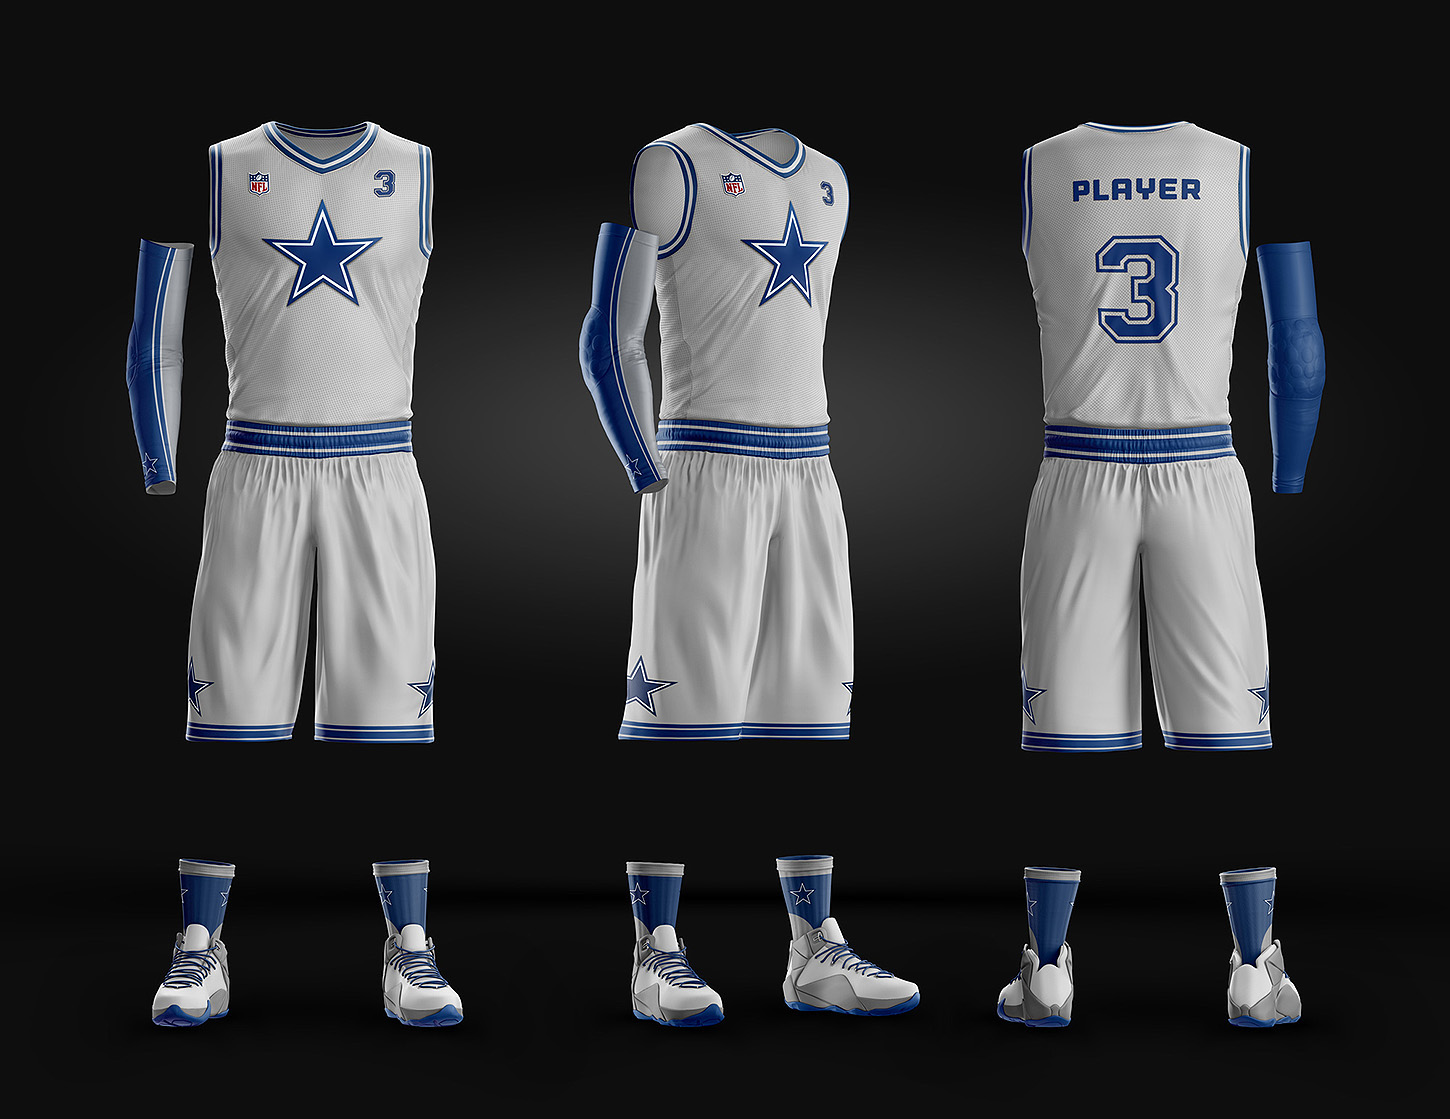 e03864d59b4 Basketball Uniform Jersey PSD template on Behance